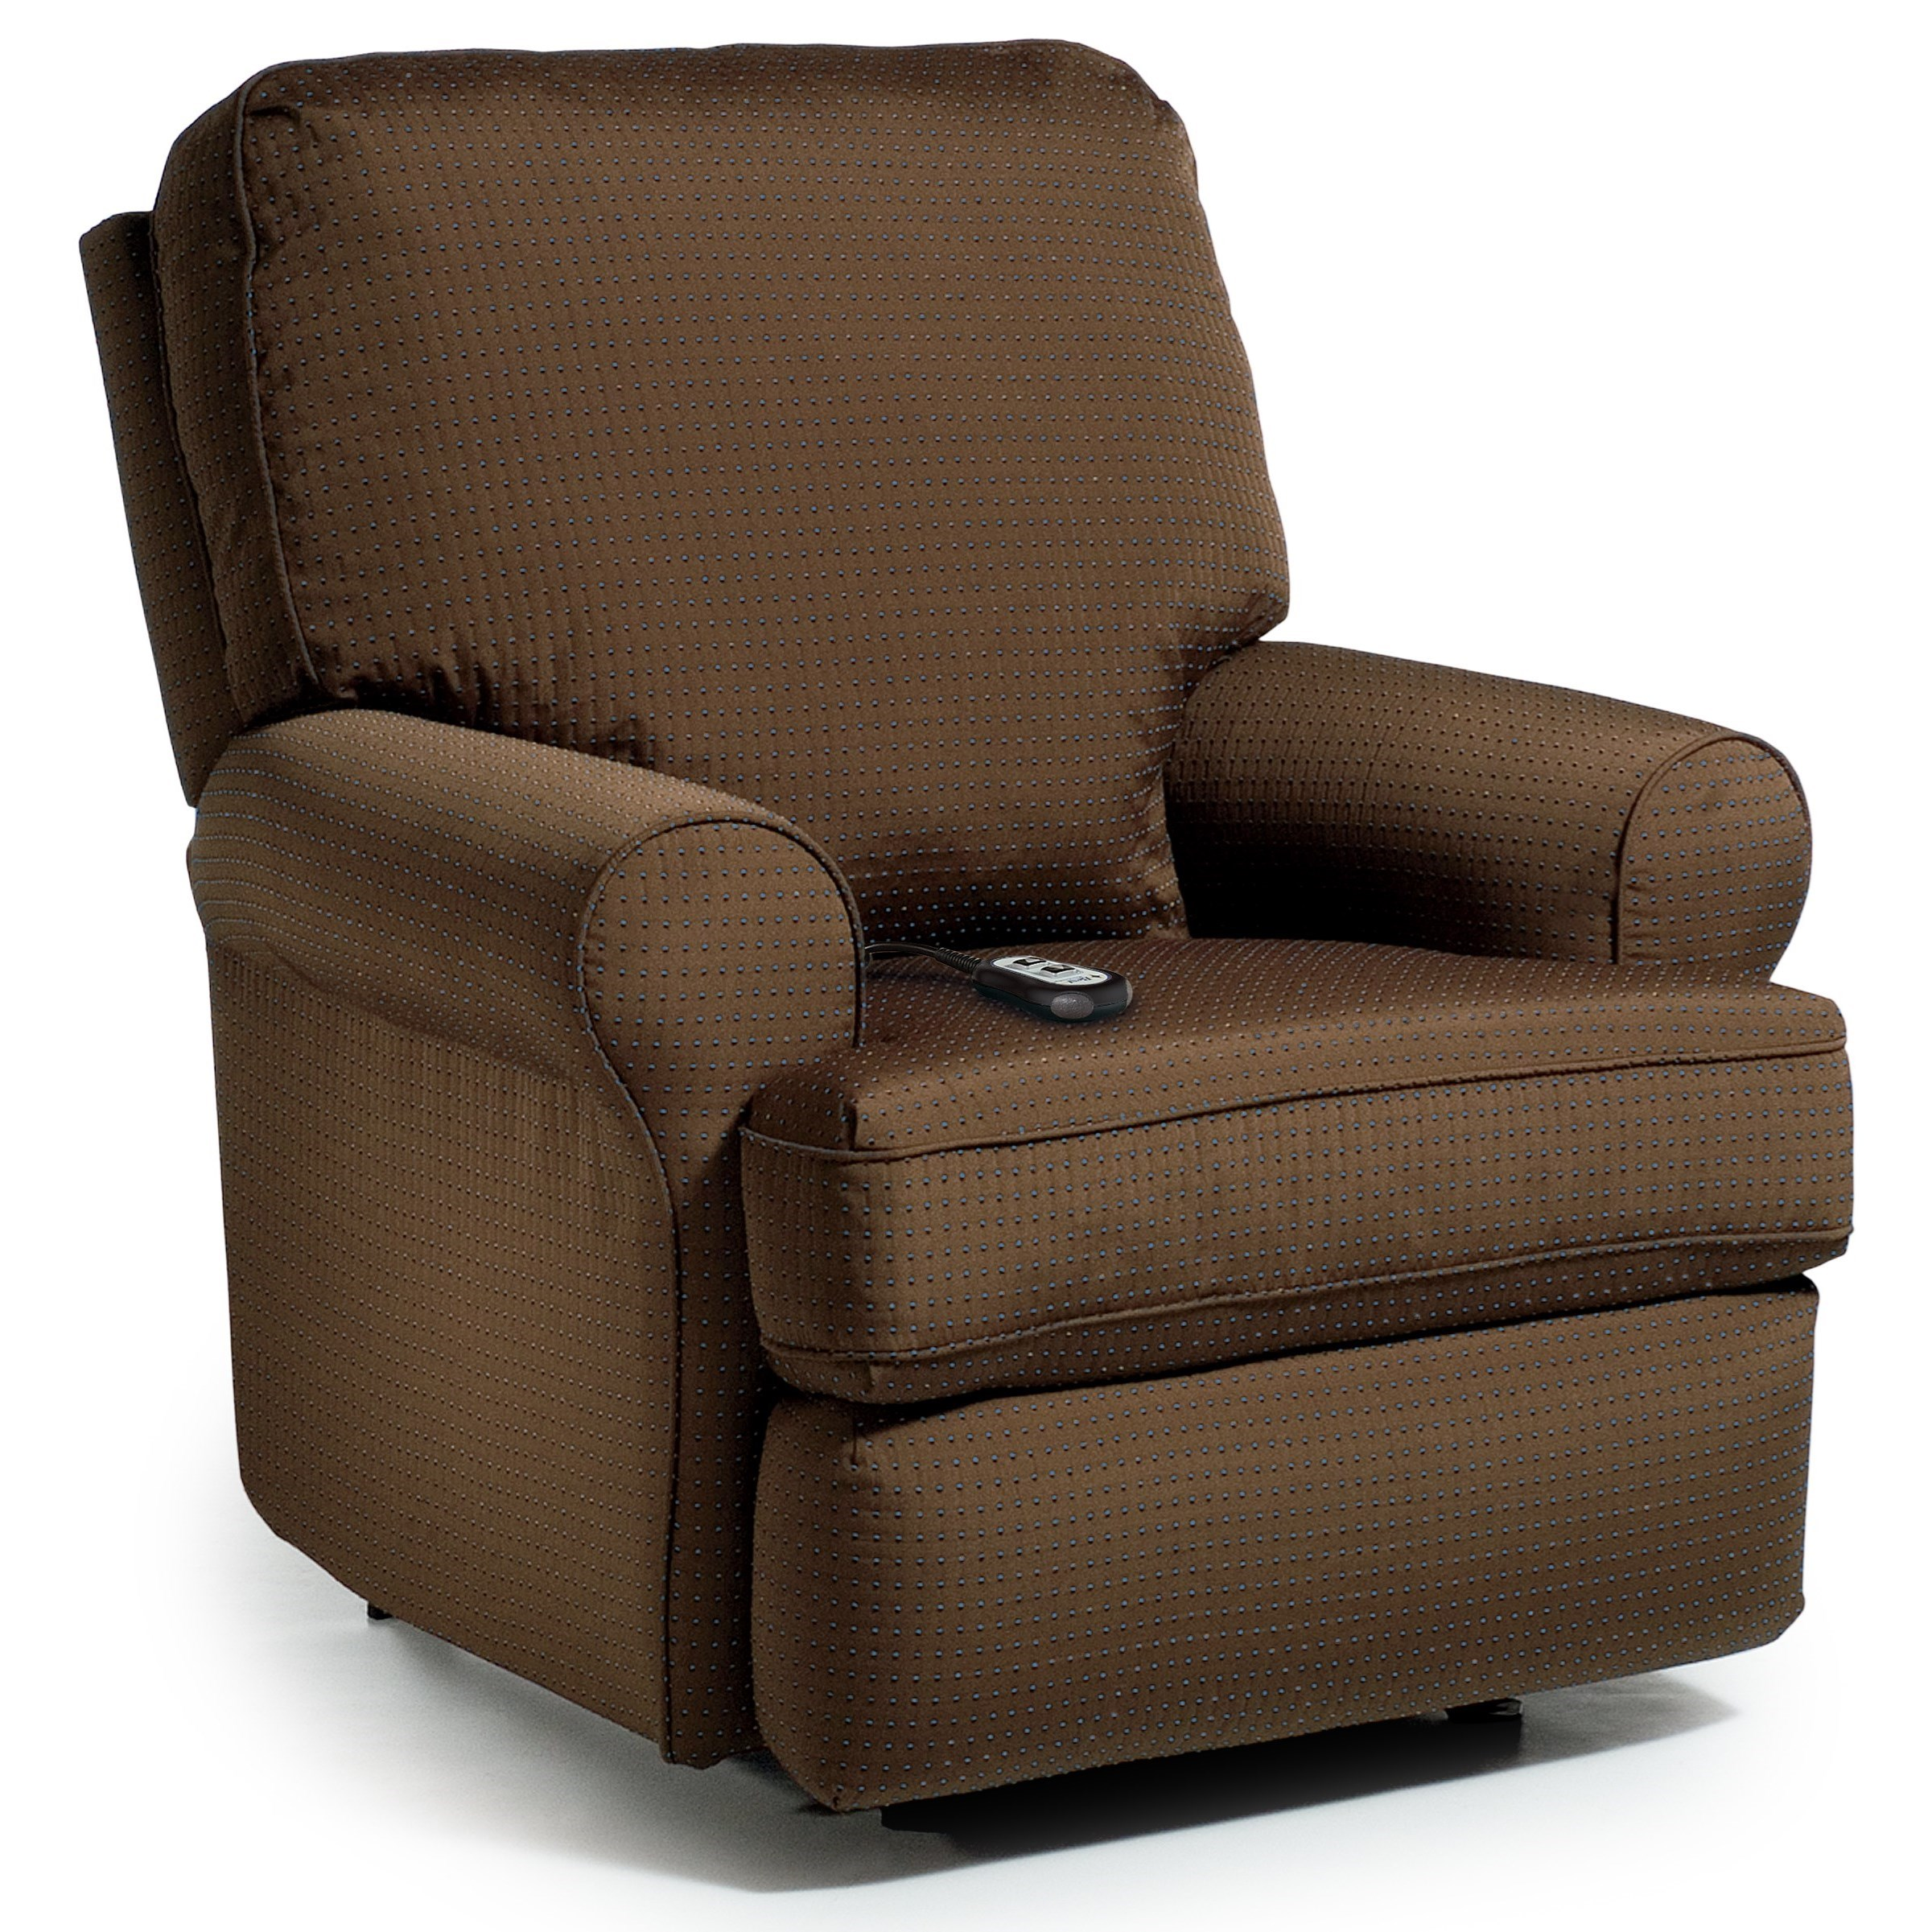 Lift Chairs Recliners Best Home Furnishings Recliners Medium Tryp Power Lift